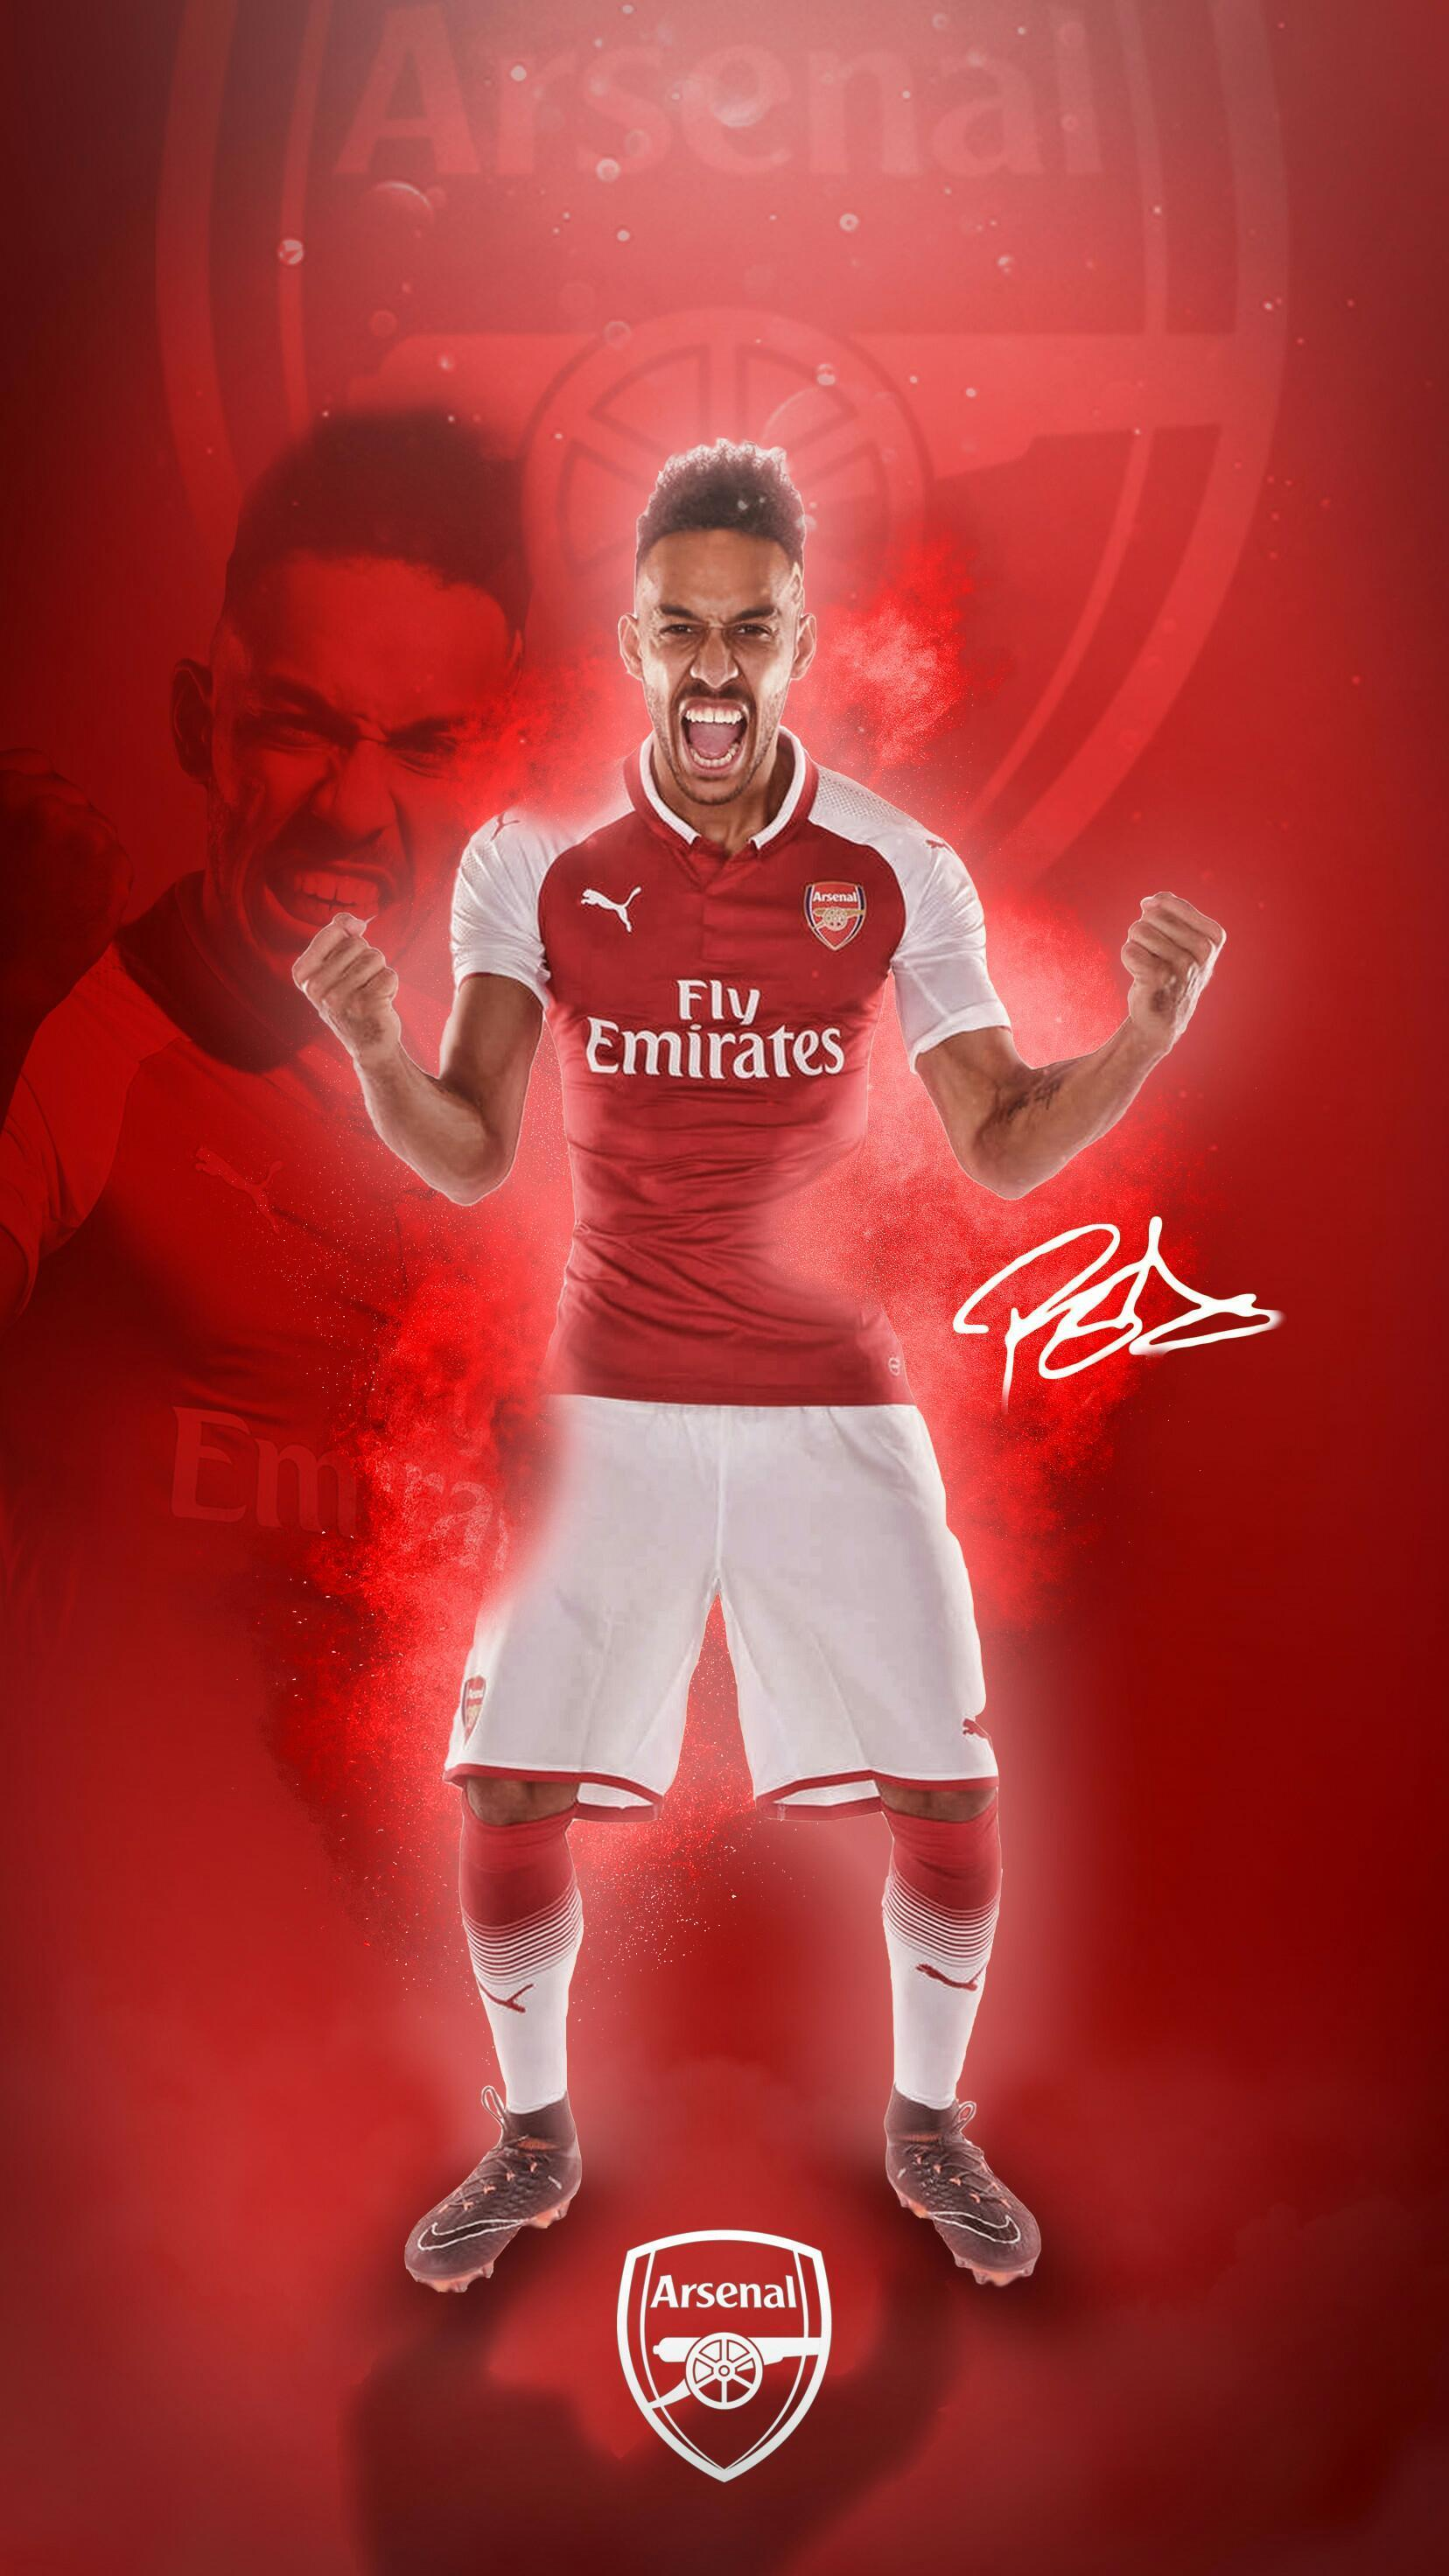 Aubameyang Wallpapers for Android   APK Download 1656x2944